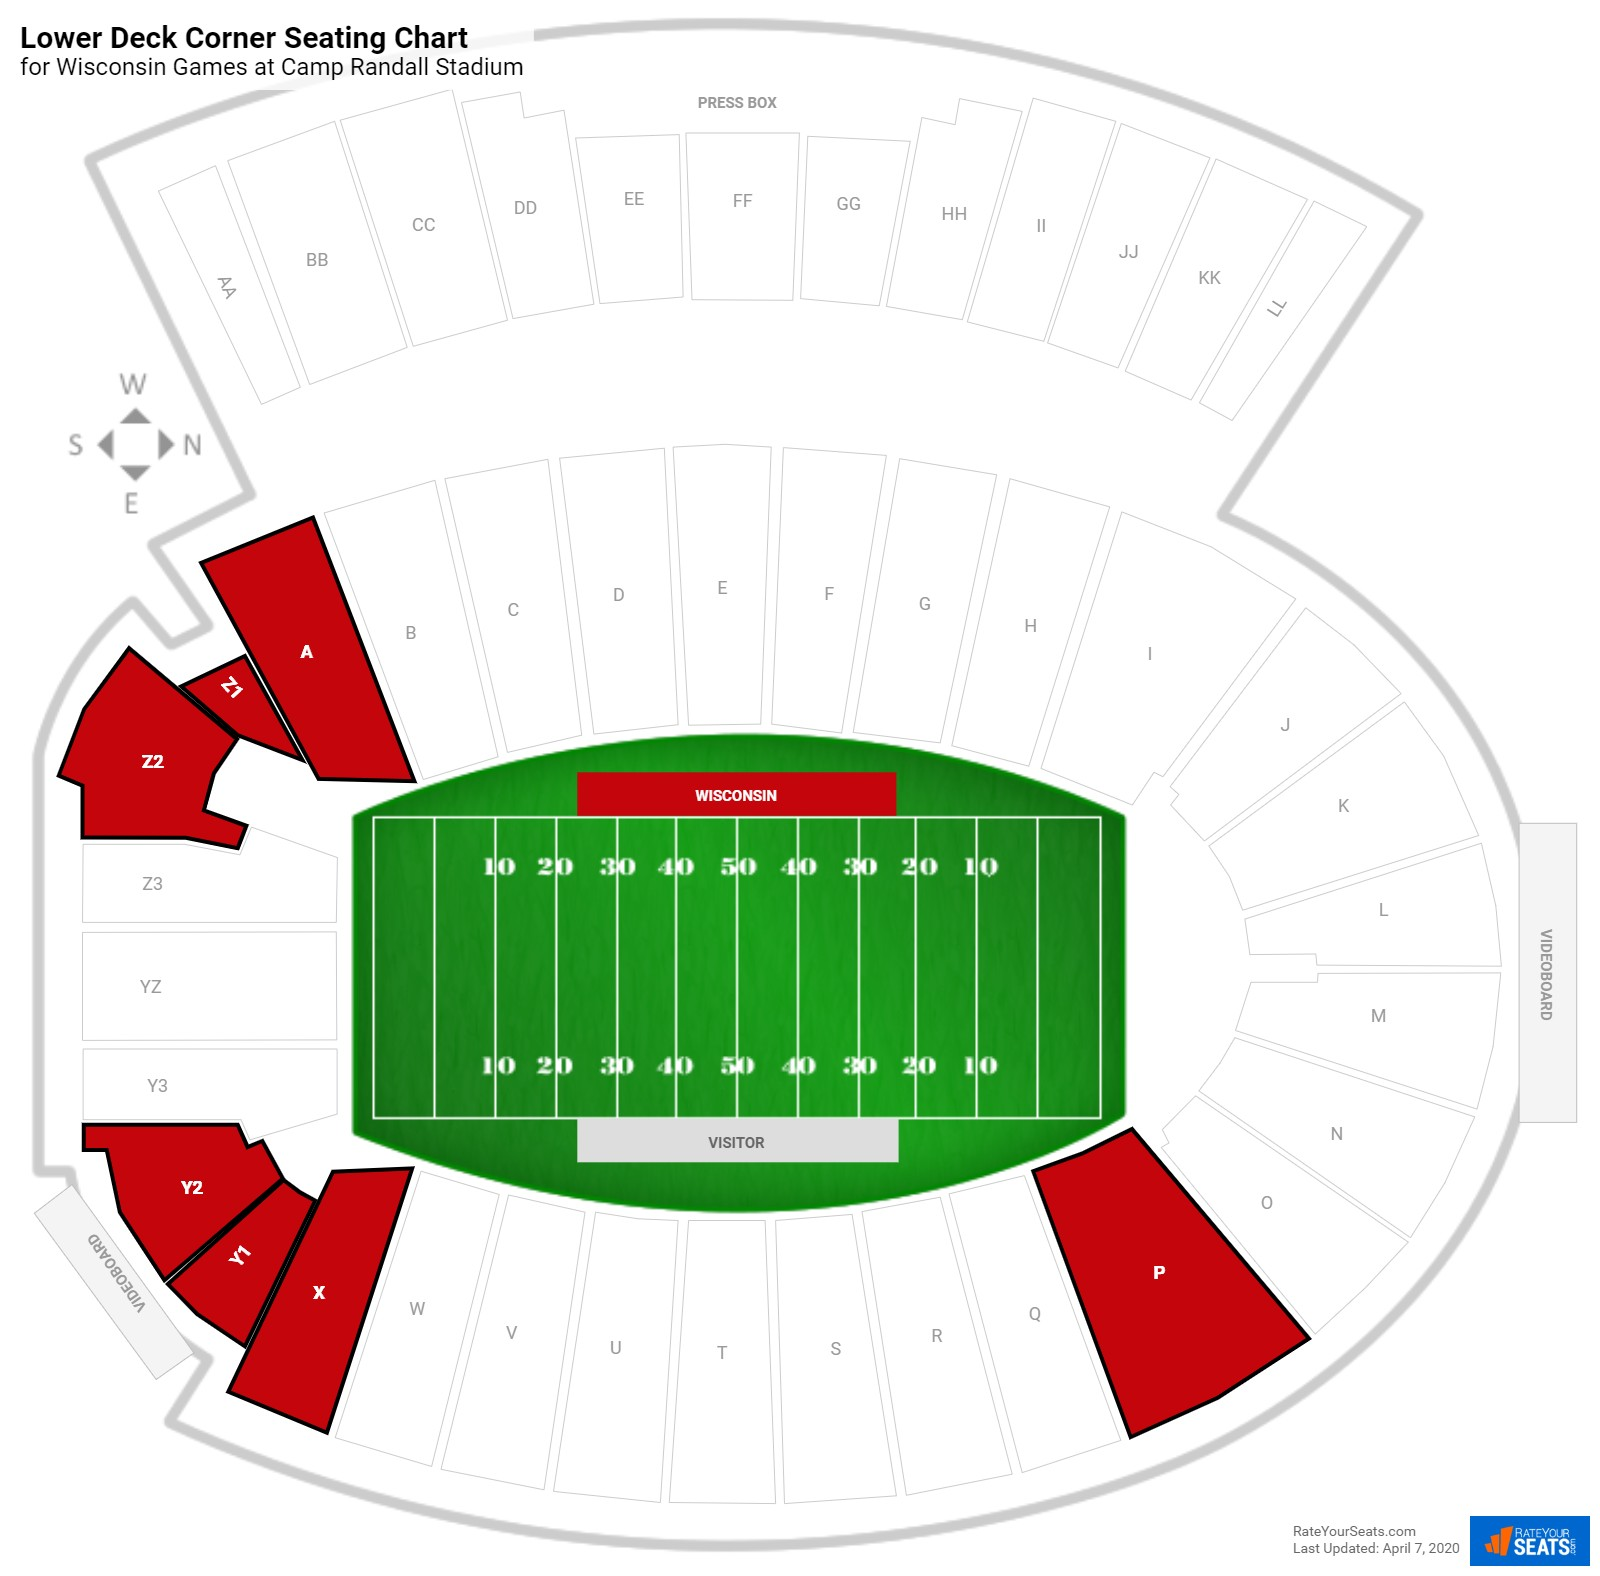 Camp Randall Stadium Lower Deck Corner seating chart